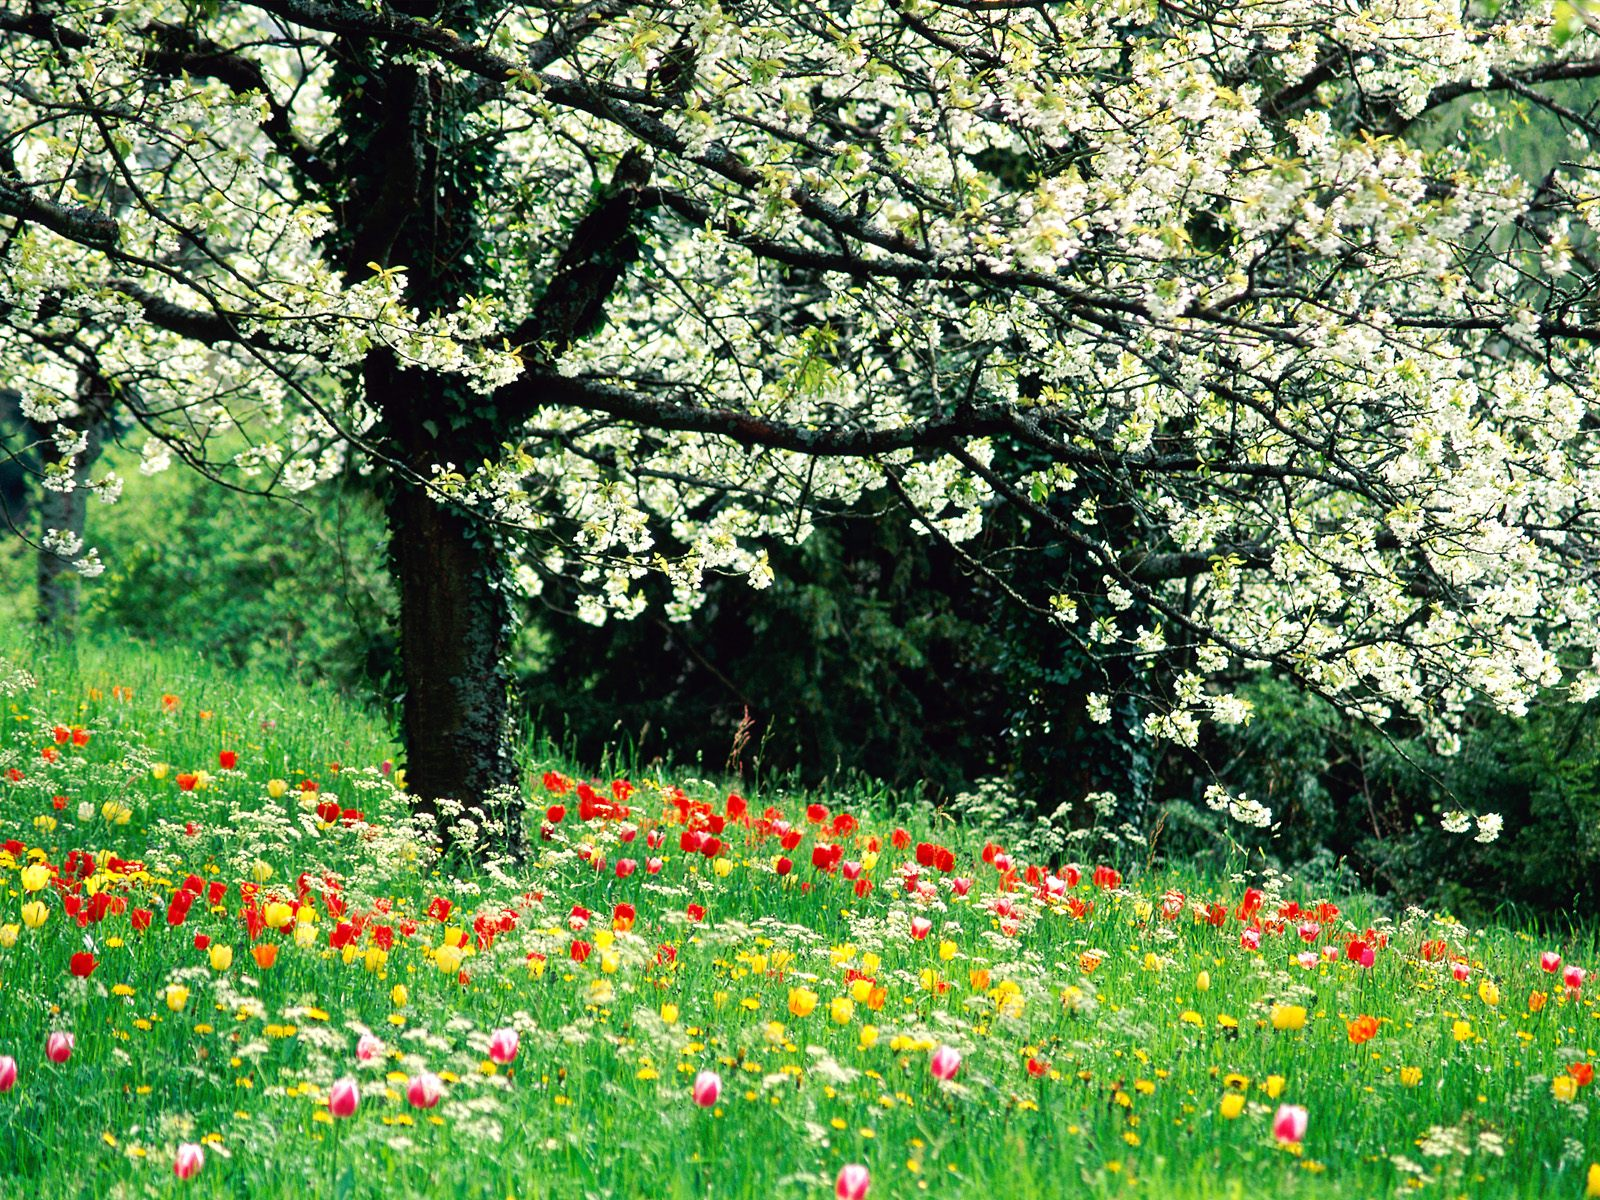 Only Nature Spring Wallpapers 1600x1200